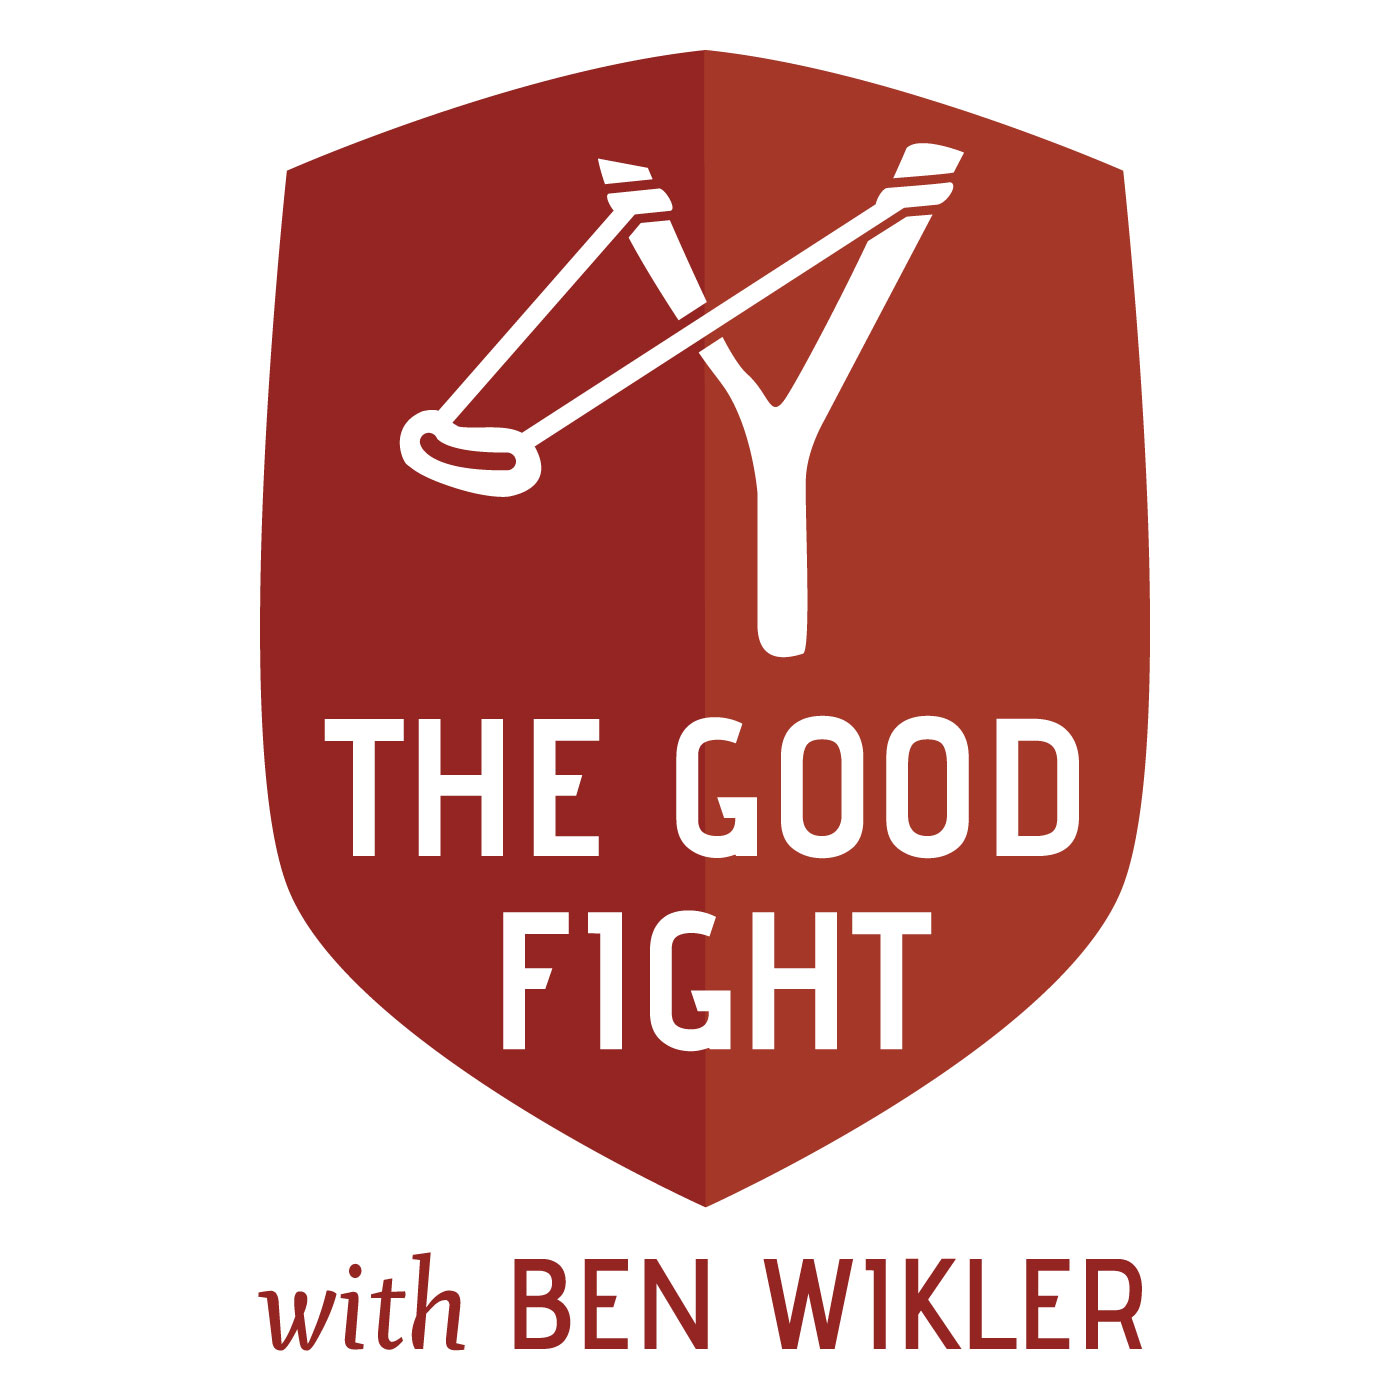 The Good Fight, with Ben Wikler logo